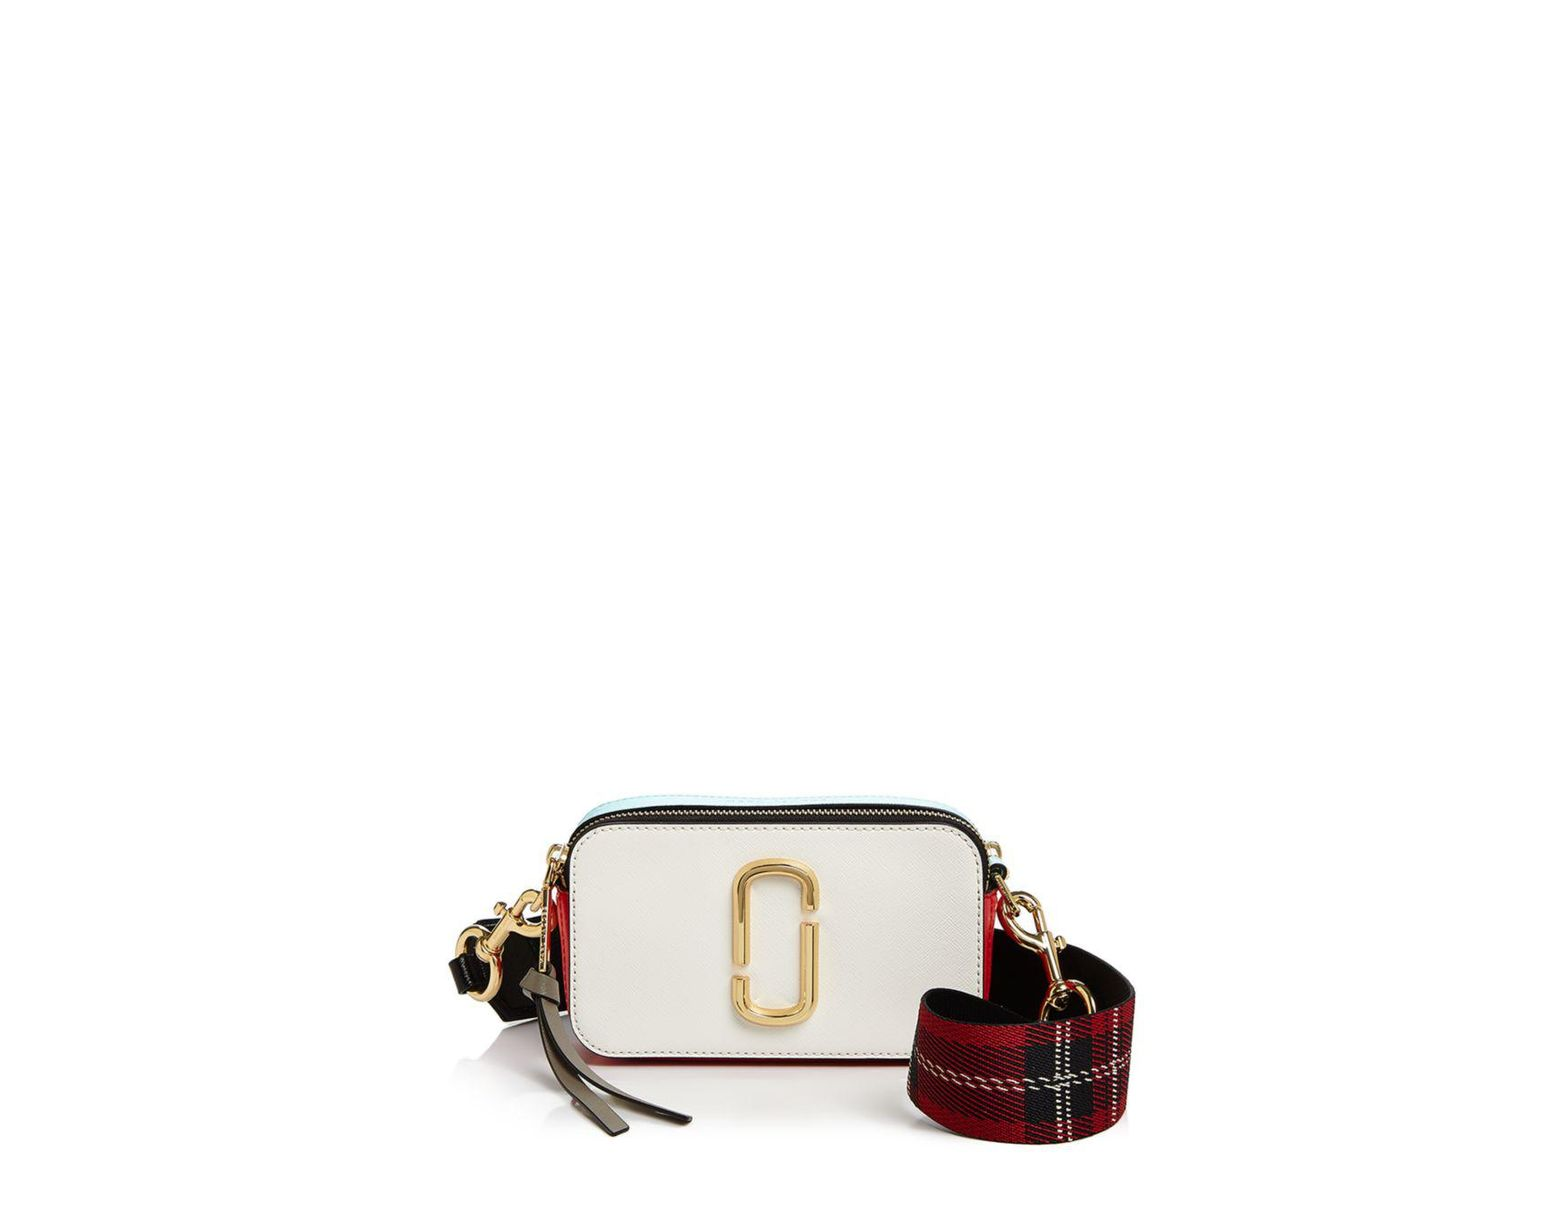 2675f105786 Marc Jacobs Snapshot Leather Camera Bag - Save 20% - Lyst